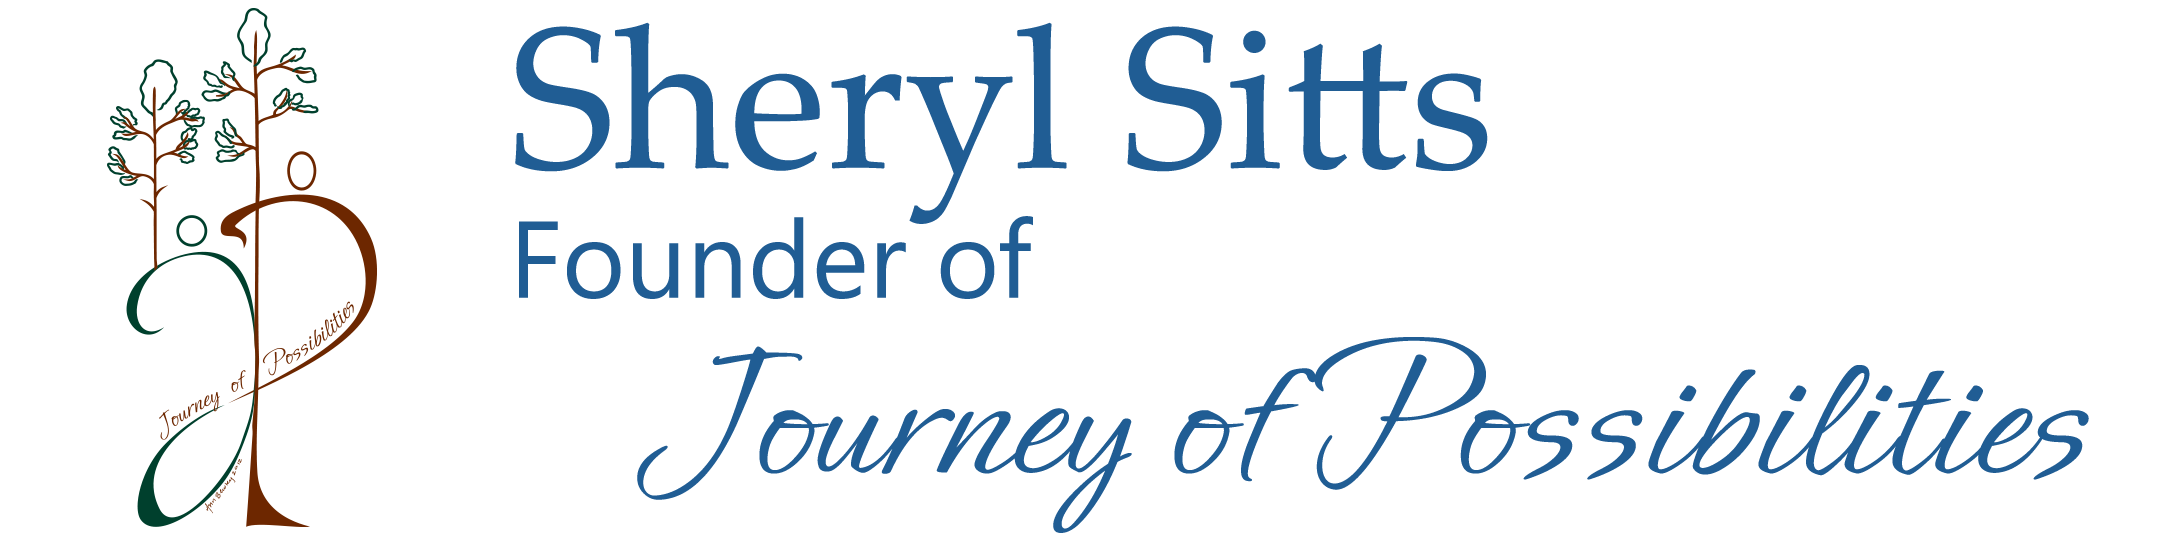 Journey of Possibilities - Holistic Spiritual Living - Exploring Possibilities Podcast